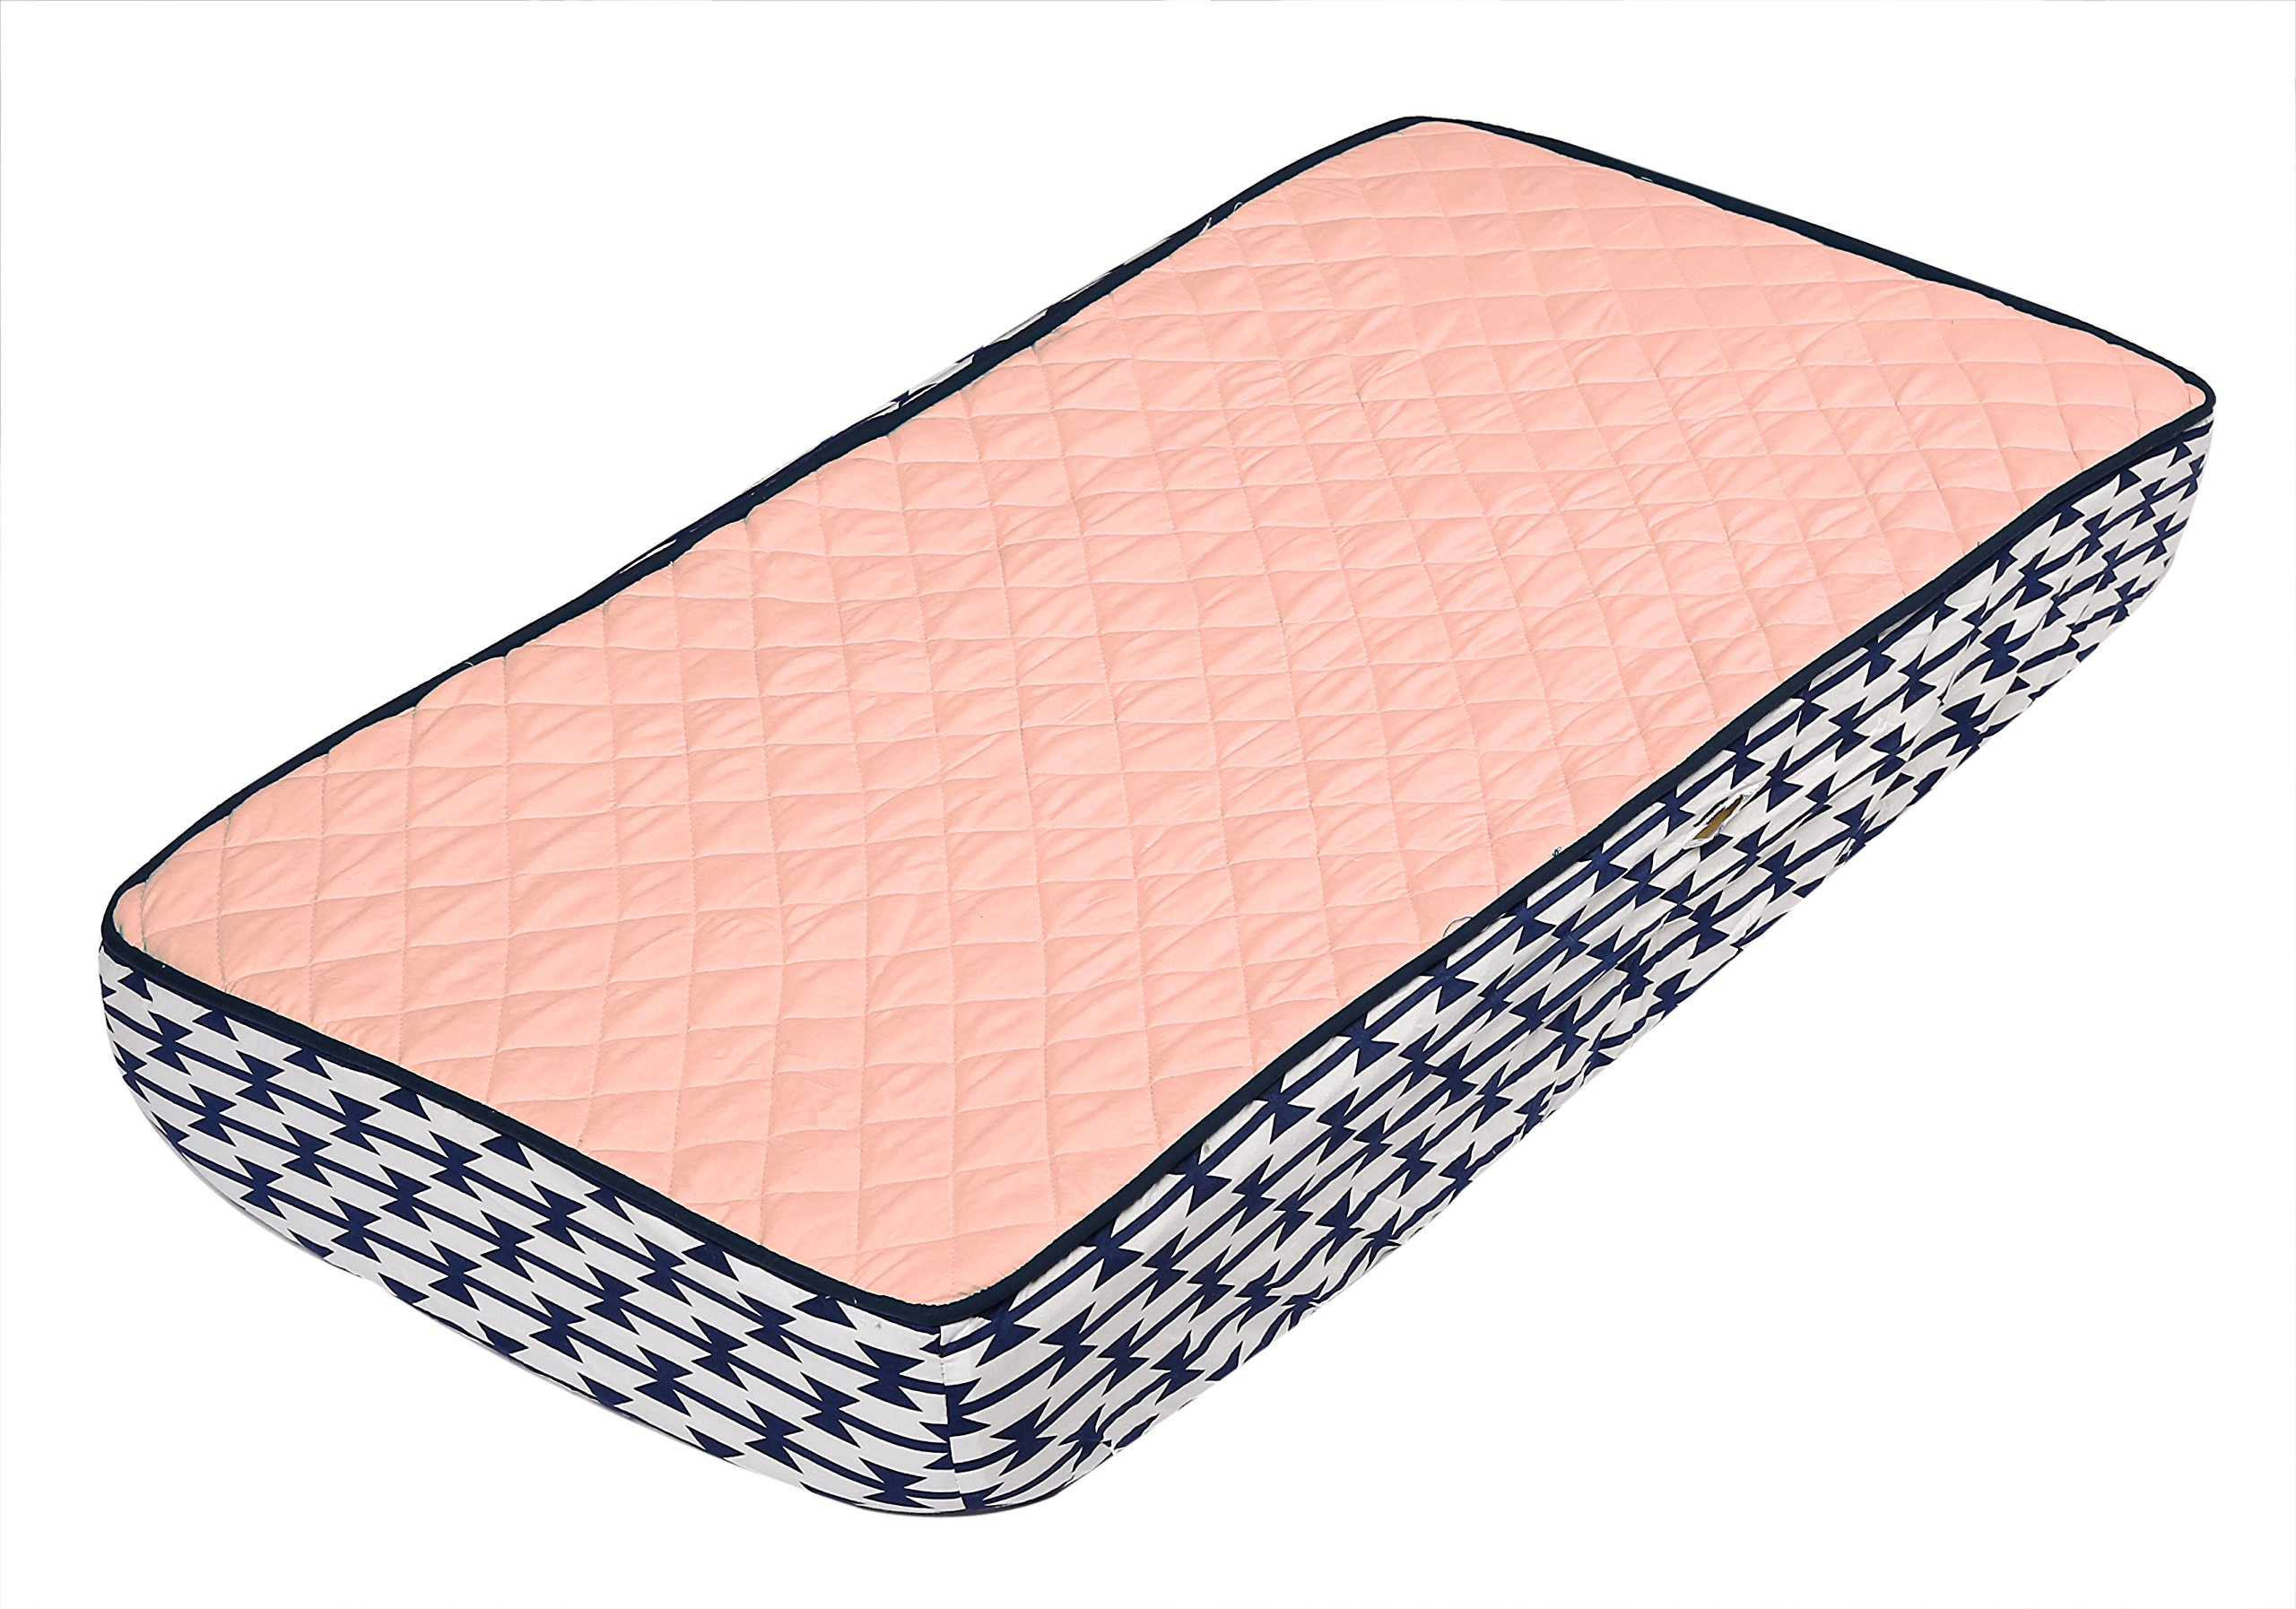 Bacati Emma Aztec Quilted Top Cotton Percale with Polyester Batting Diaper Changing Pad Cover, Coral/Navy